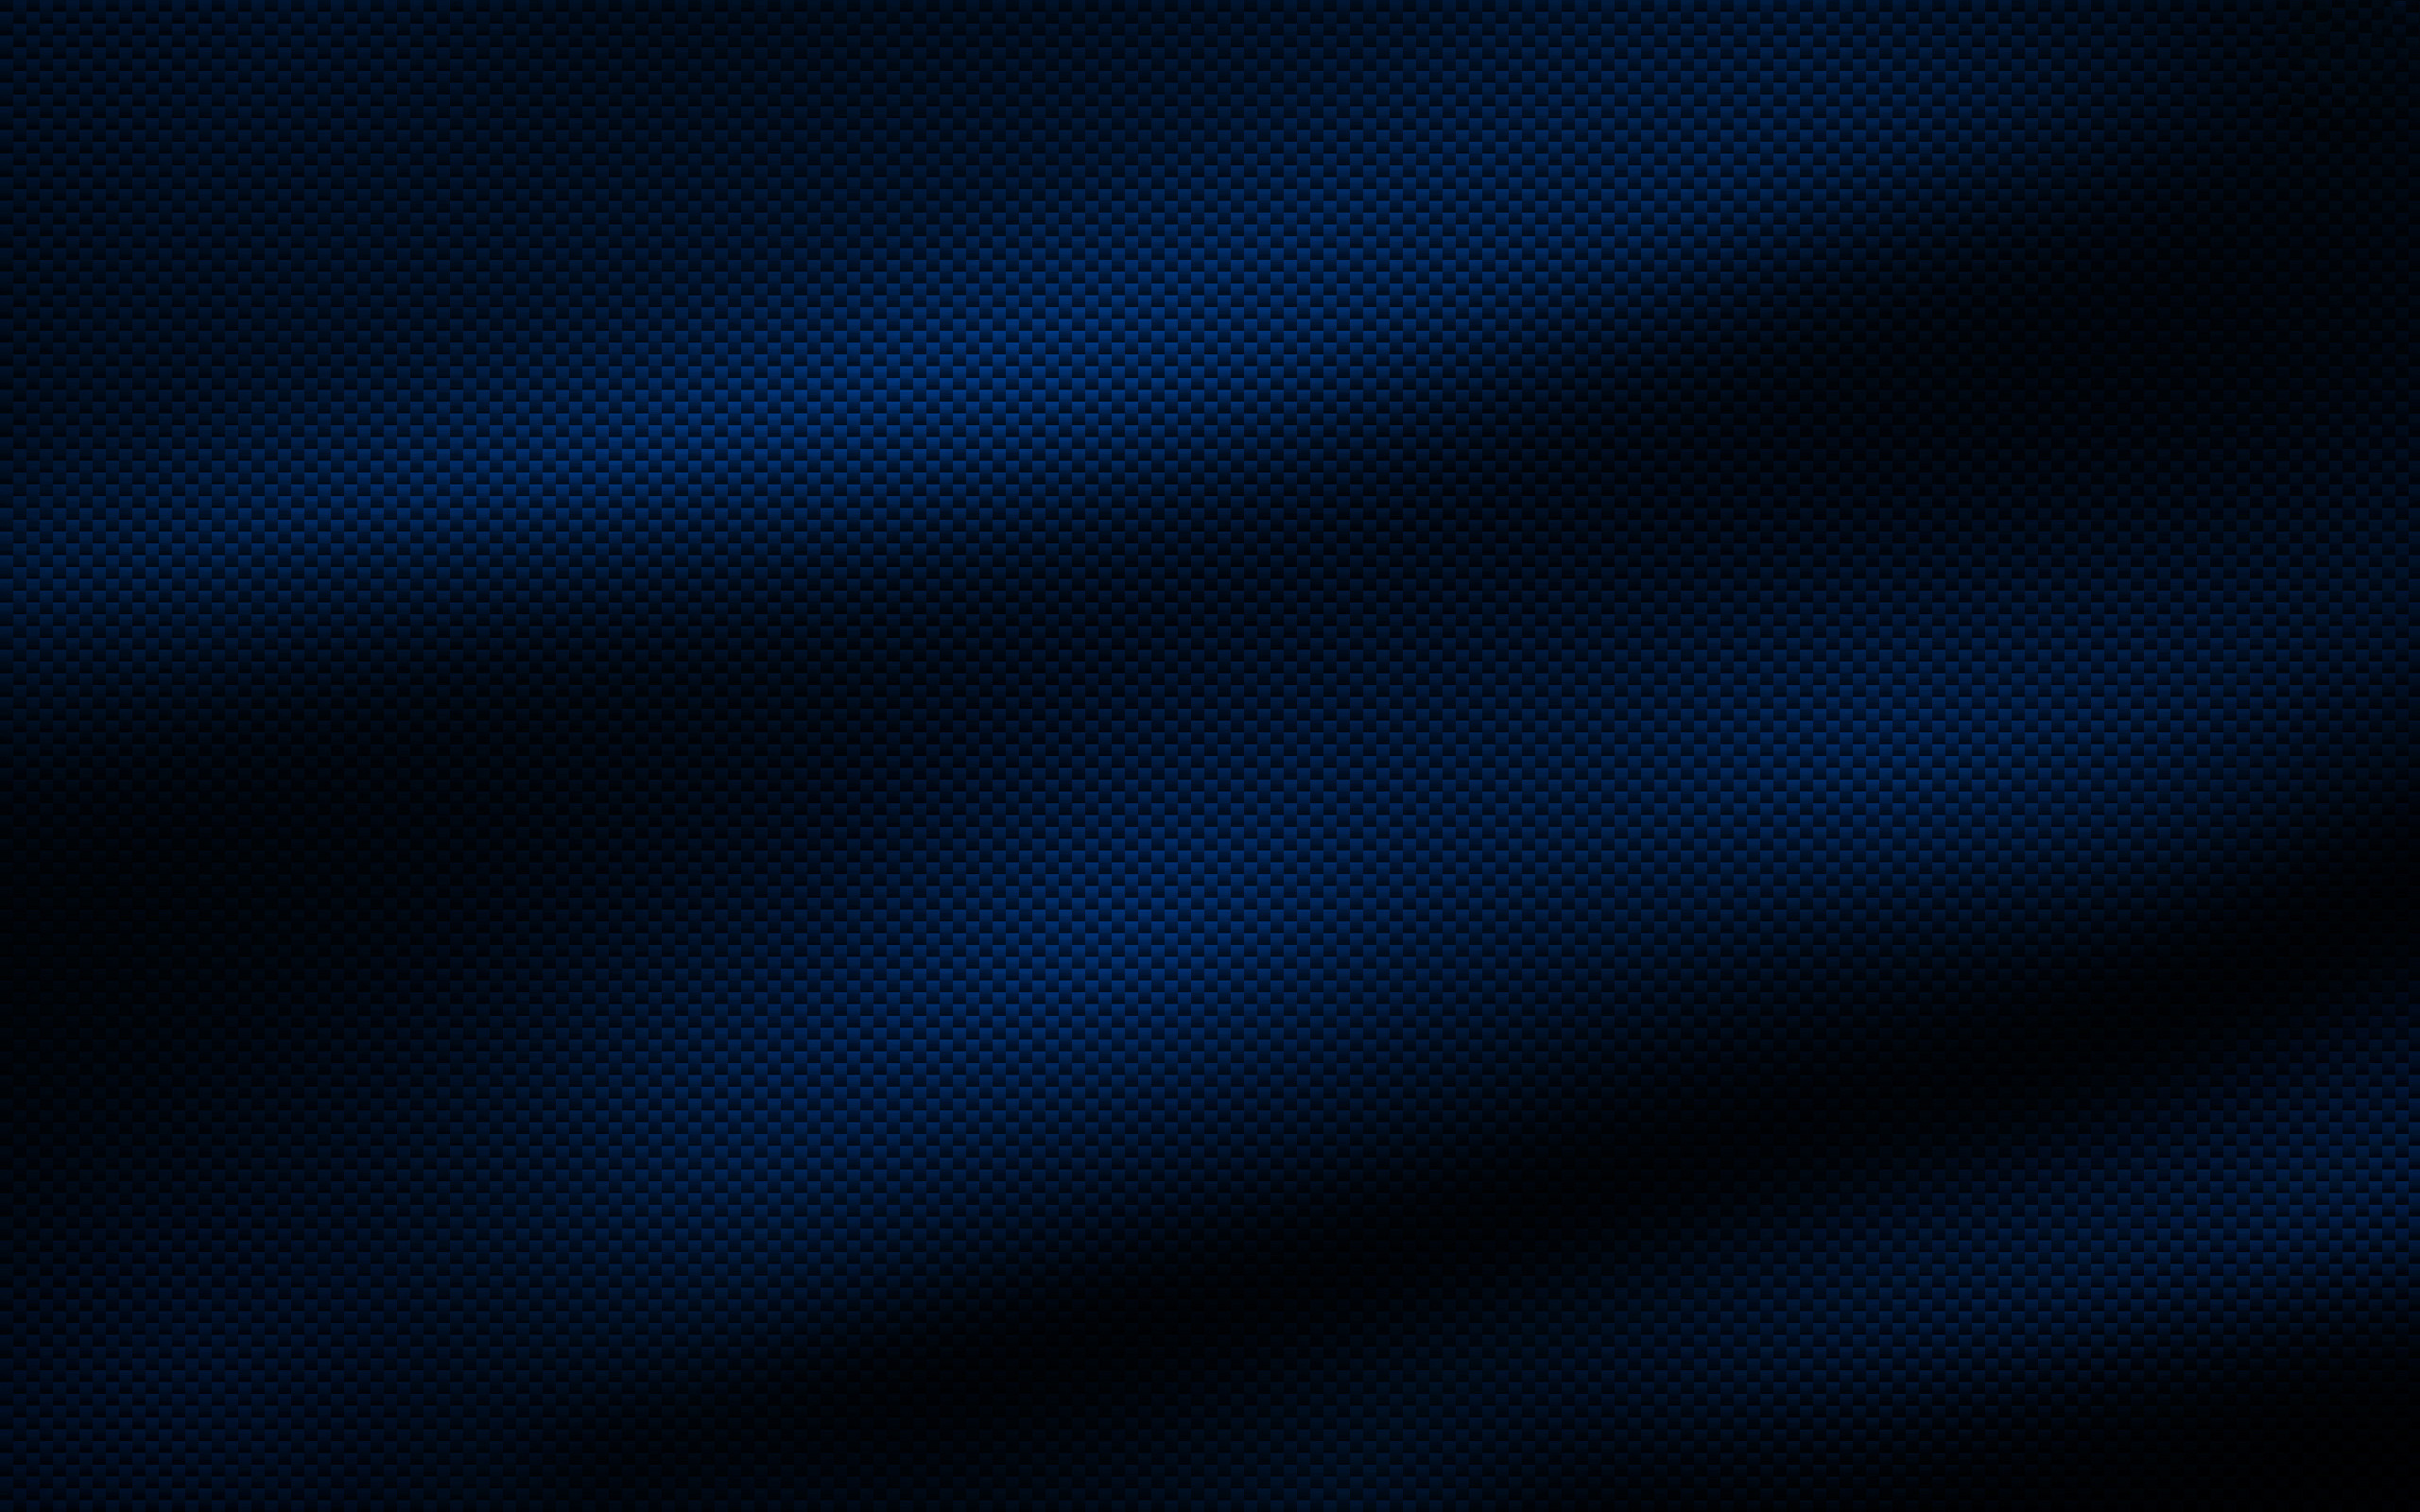 American Flag Iphone Wallpaper Blue Carbon Fiber Wallpaper 2560x1600 32673